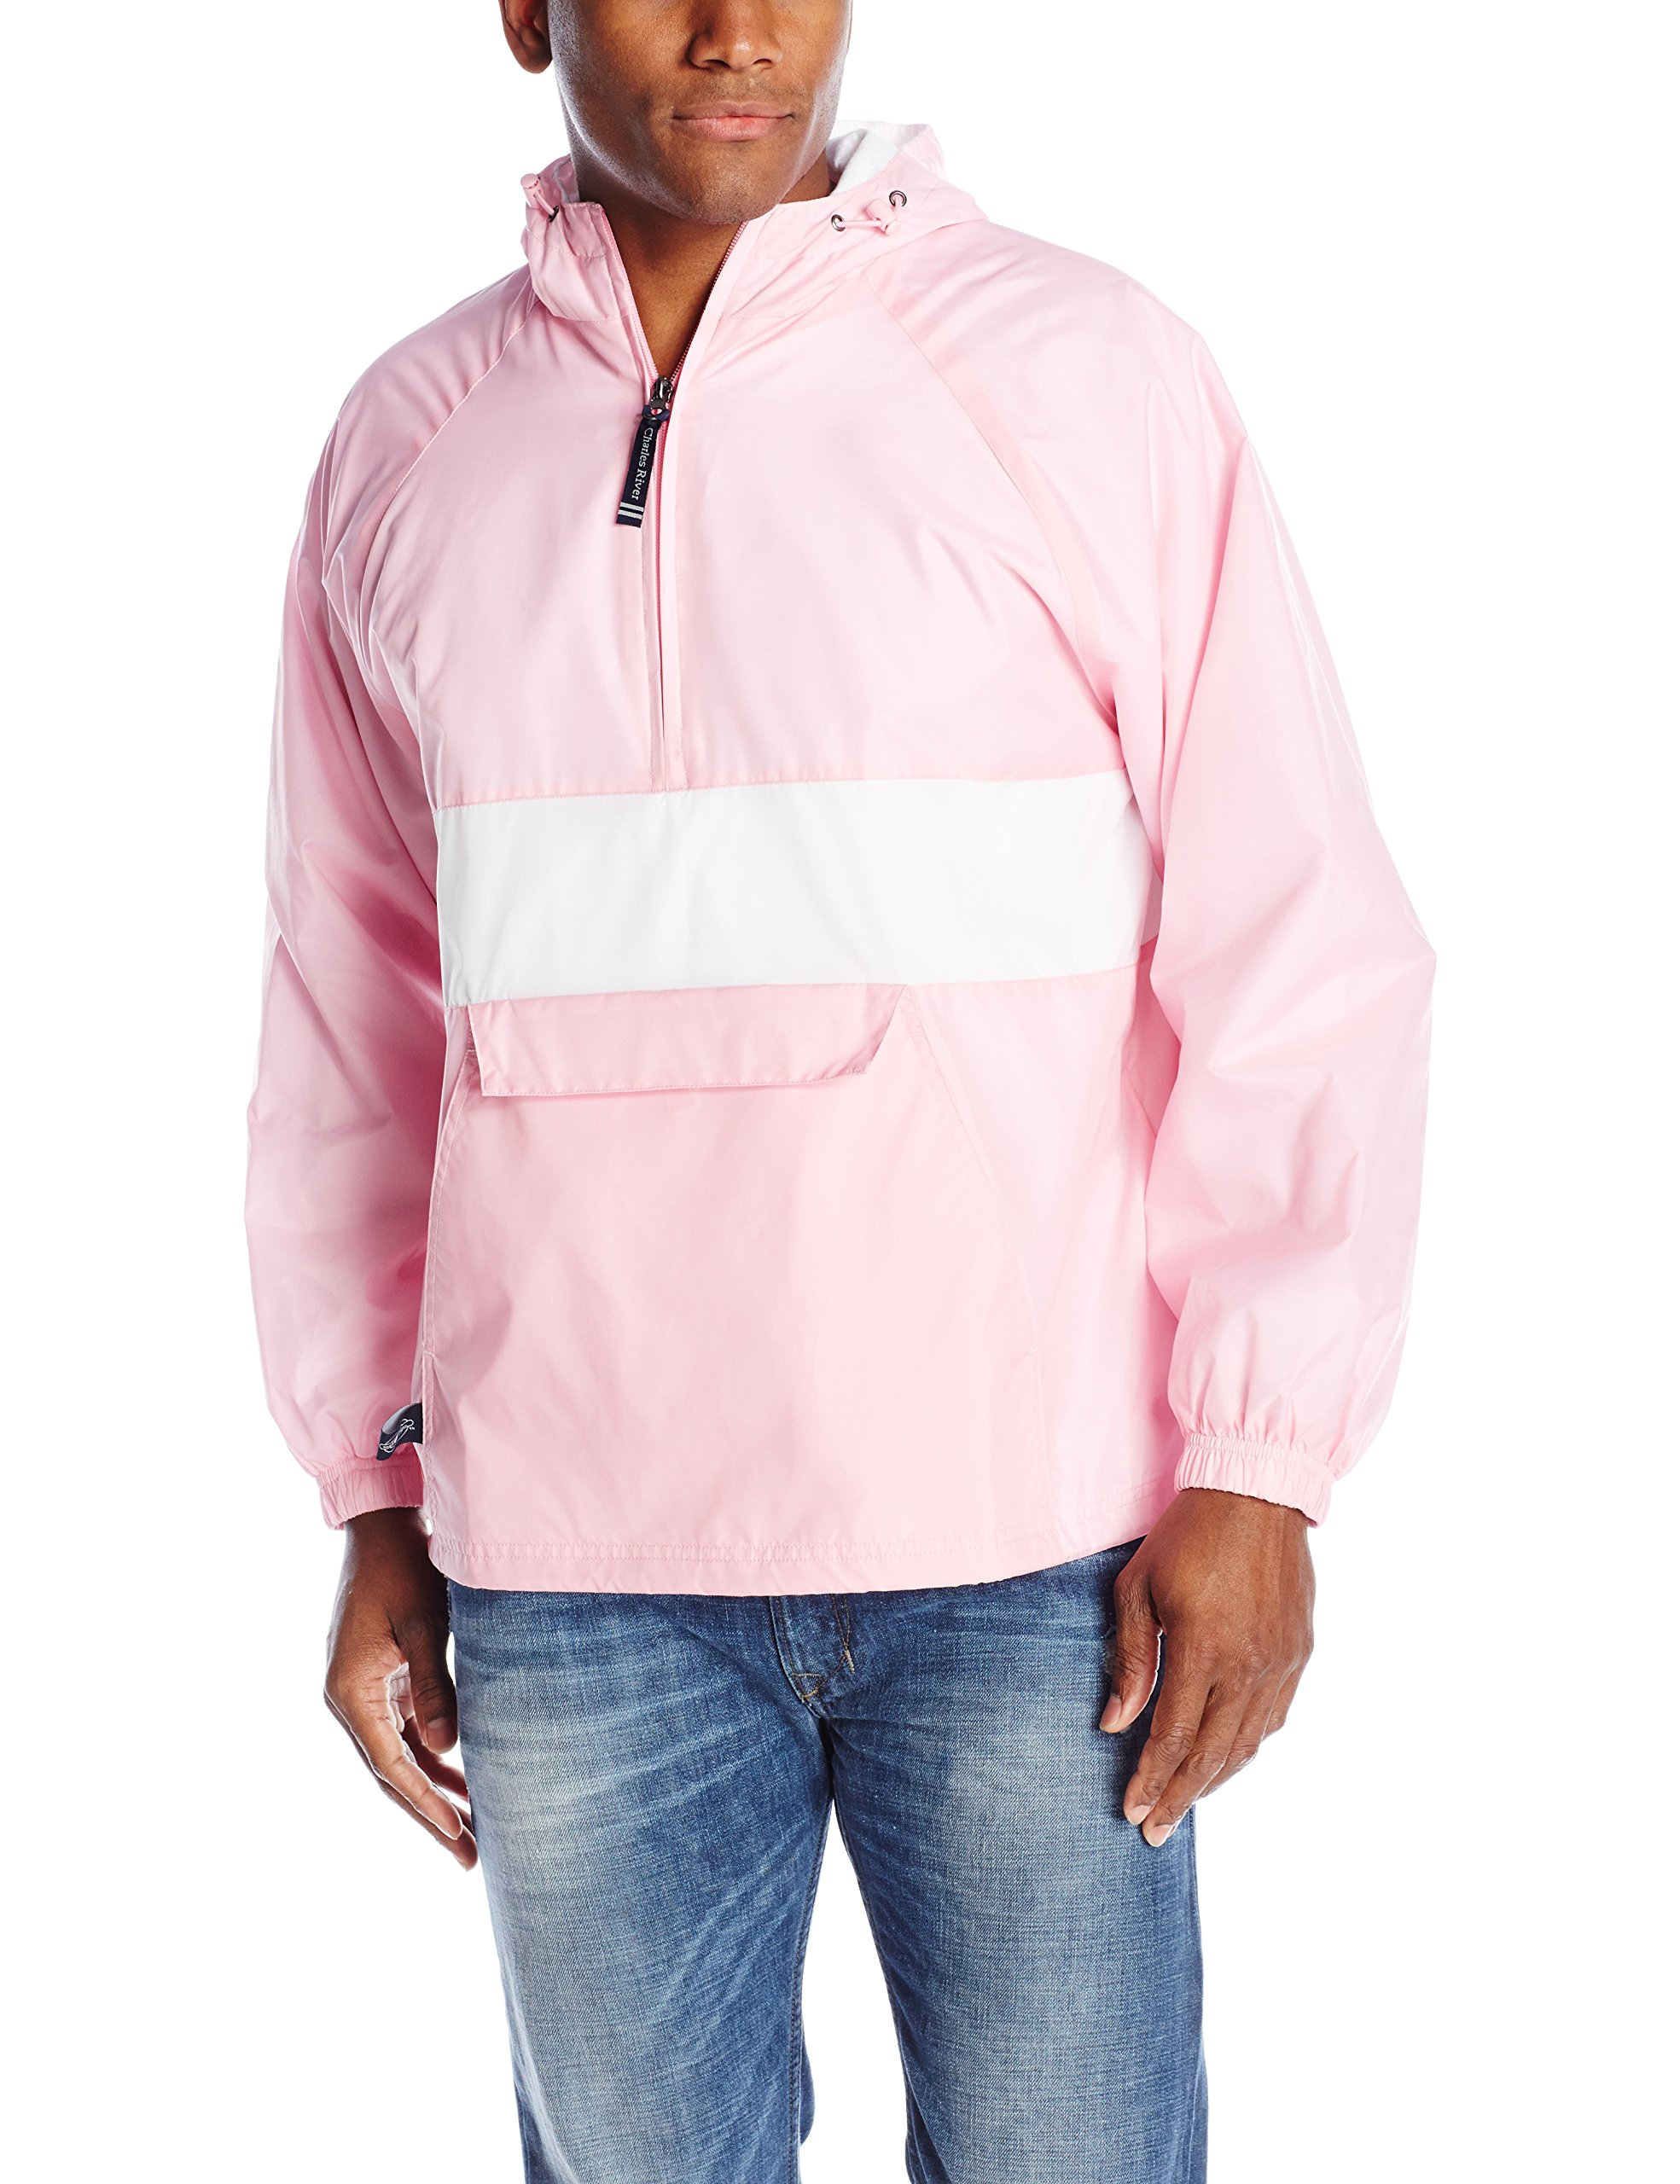 Charles River Apparel Men's Classic Striped Pullover Jacket, Pink/White, Small by Charles River Apparel